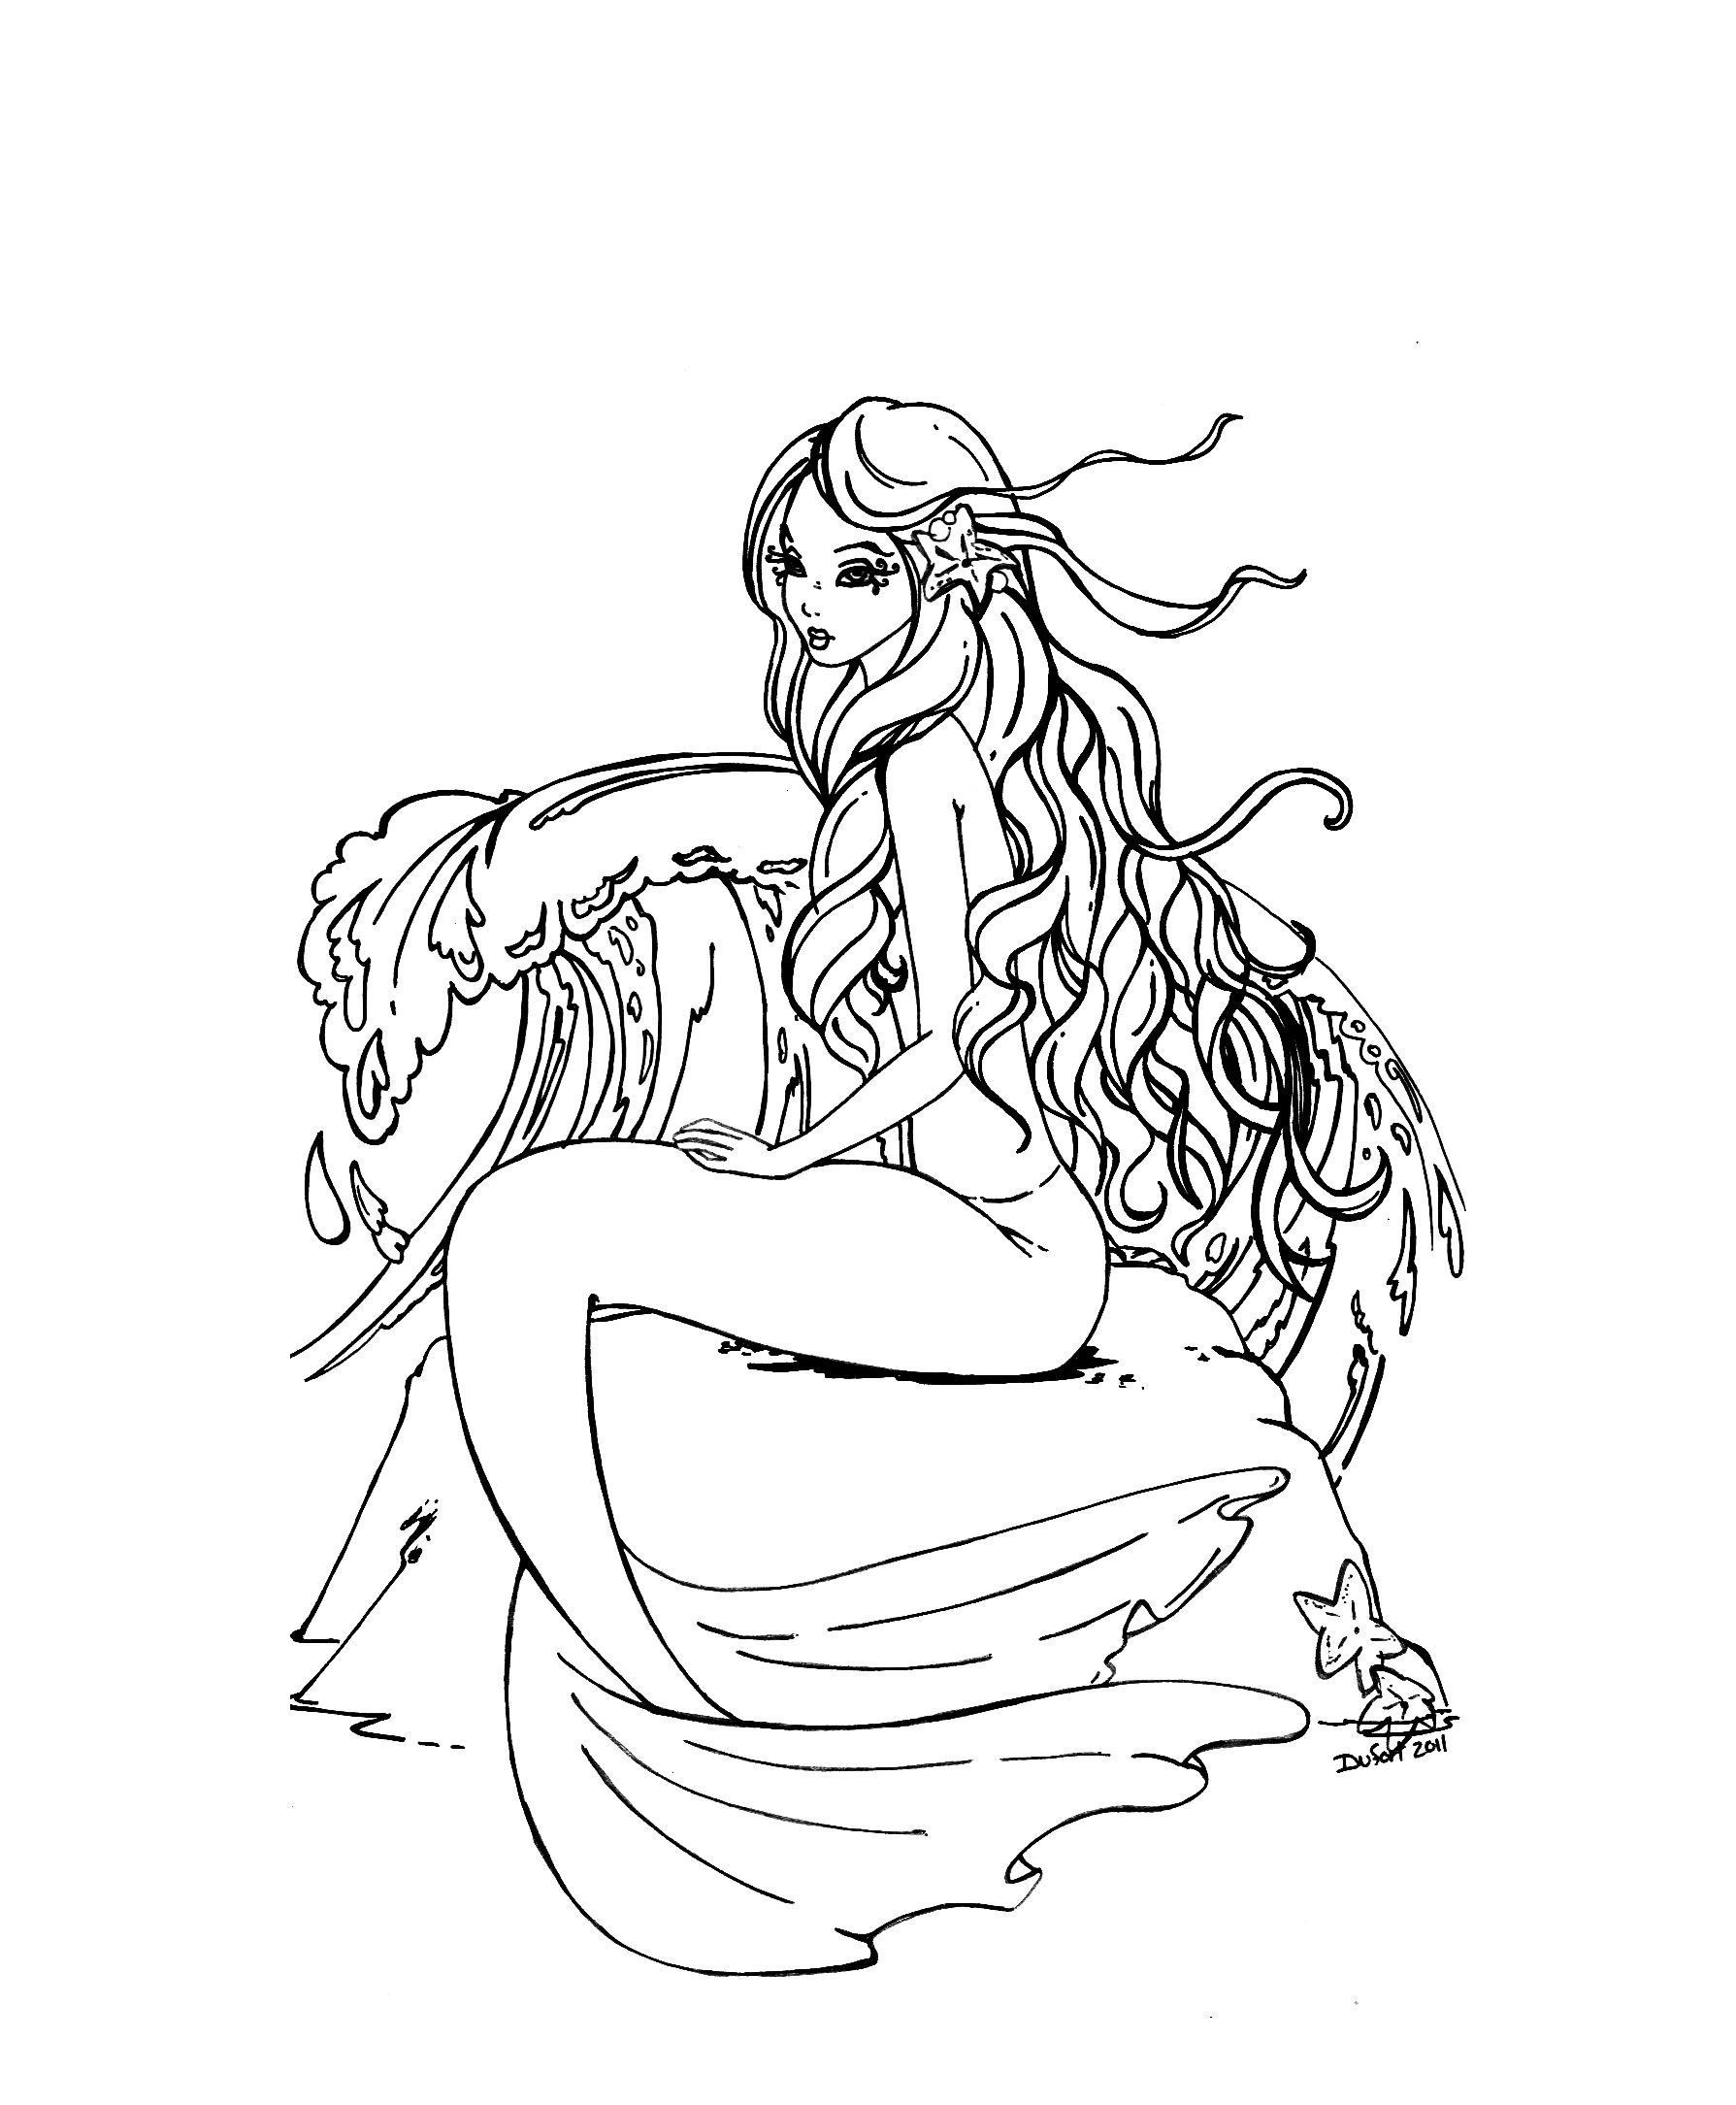 Free coloring pictures of mermaids - Jade Dragonne Coloring Pages Pesquisa Google